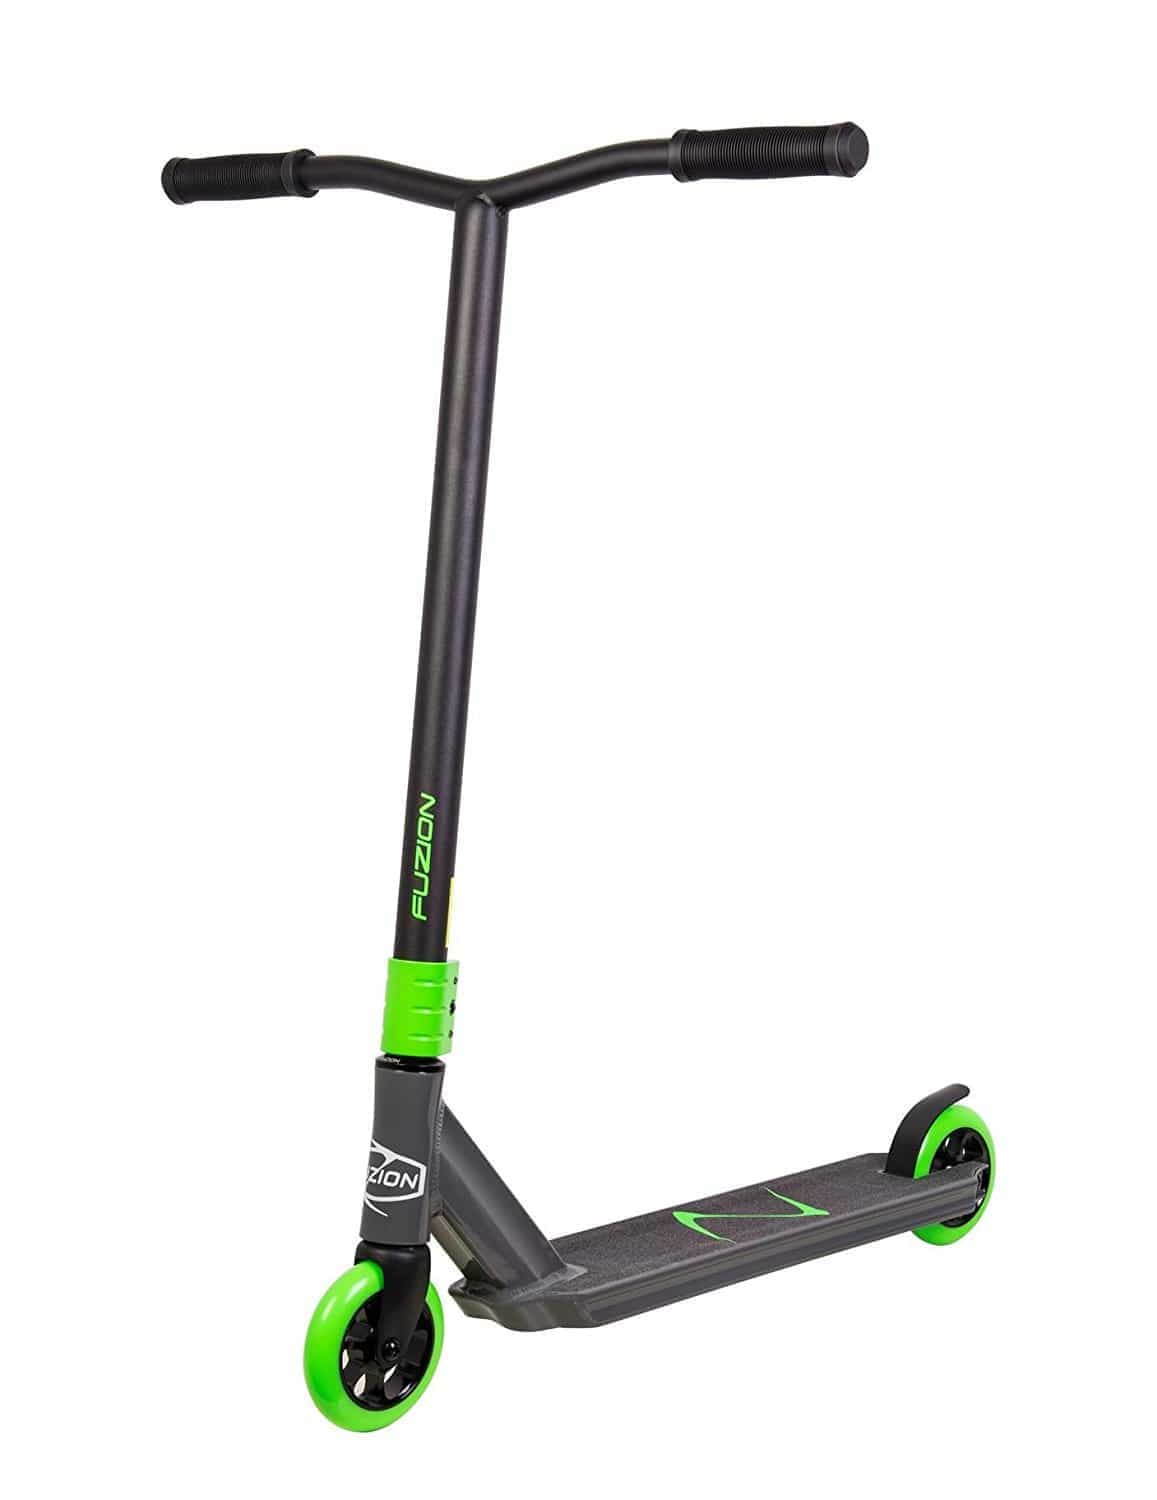 best pro scooter in the world to buy